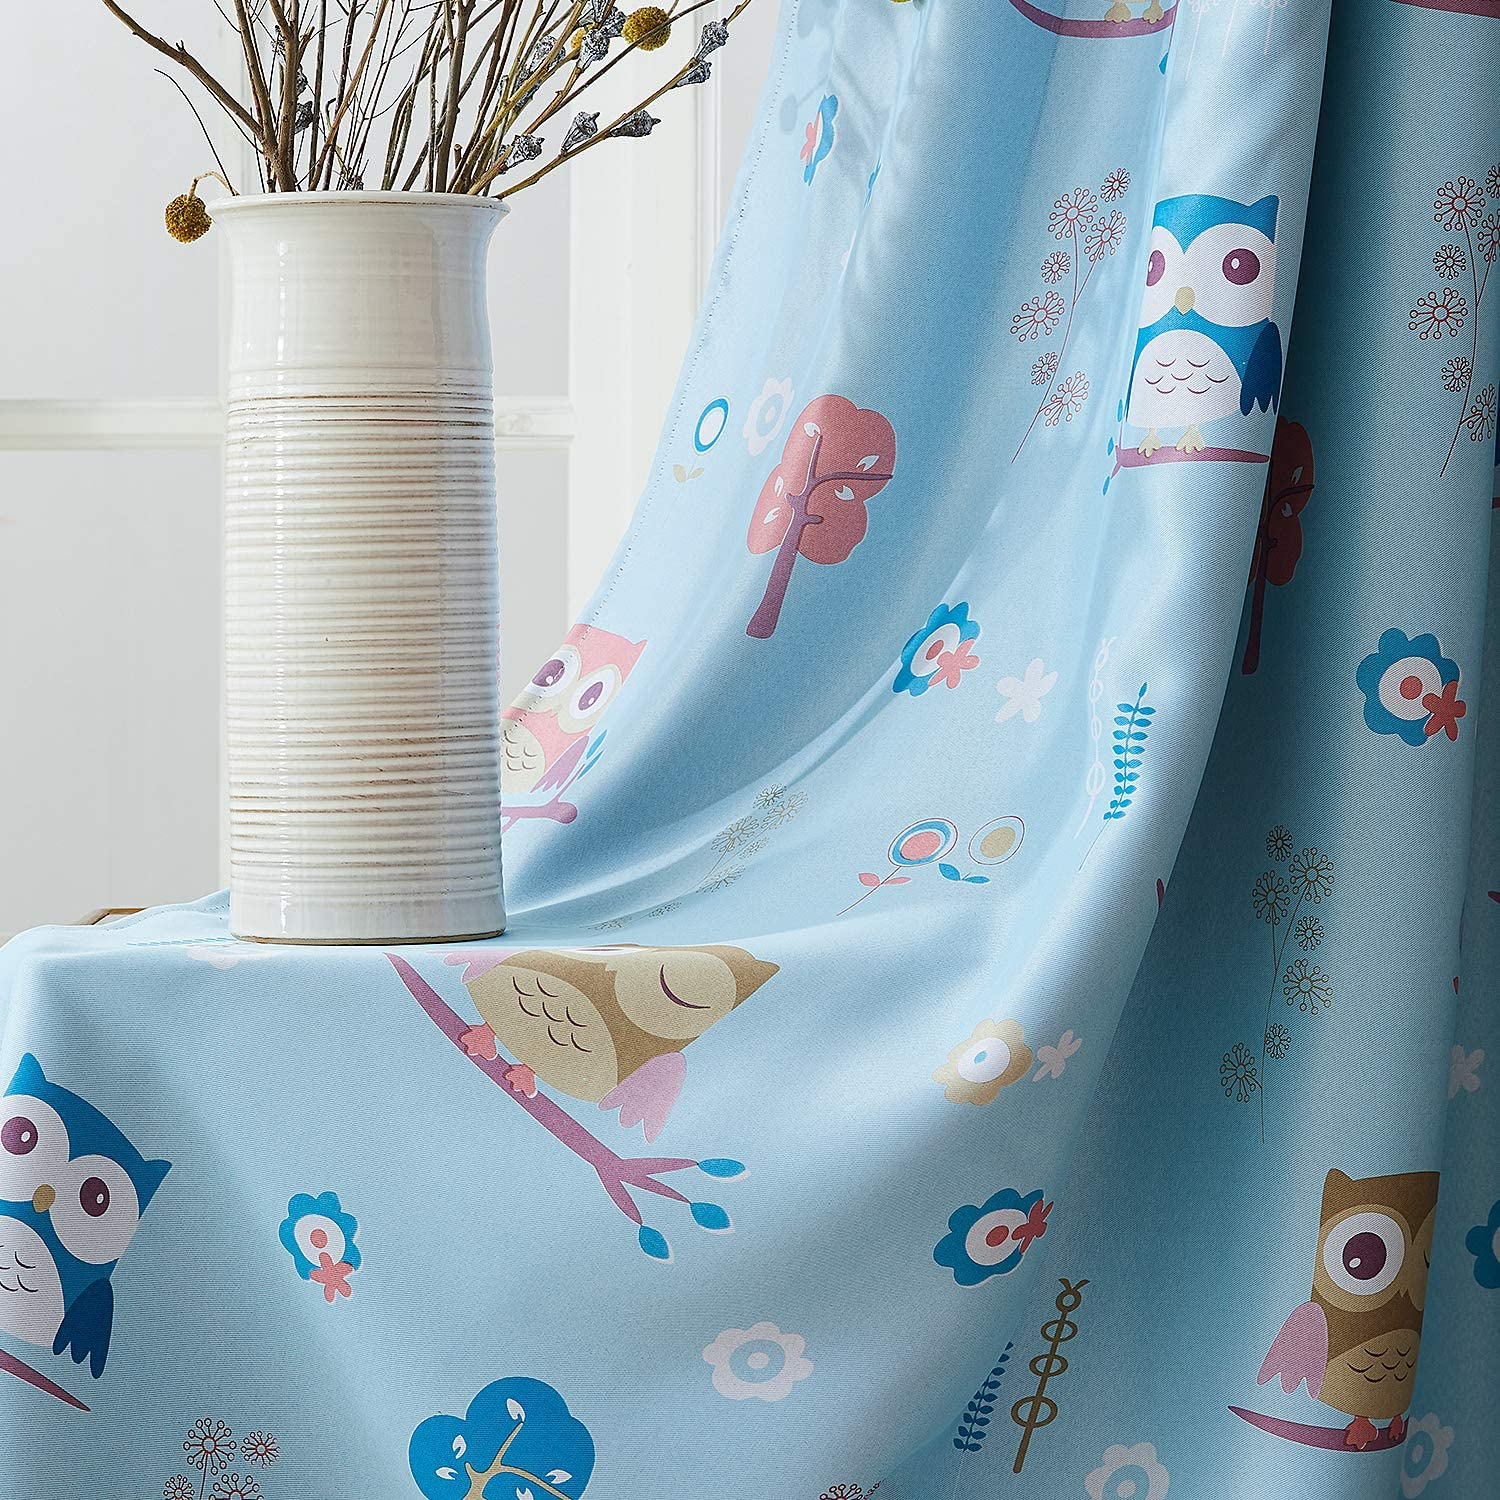 Set of 2 Panels Blue Topfinel Printed Kids Curtains Semi Blackout for Children Bedroom Eyelet Thermal Insulated Room Darkening Cute Owl Patterned Curtains for Nursery 46x54 Inch Drop 117cmx137cm